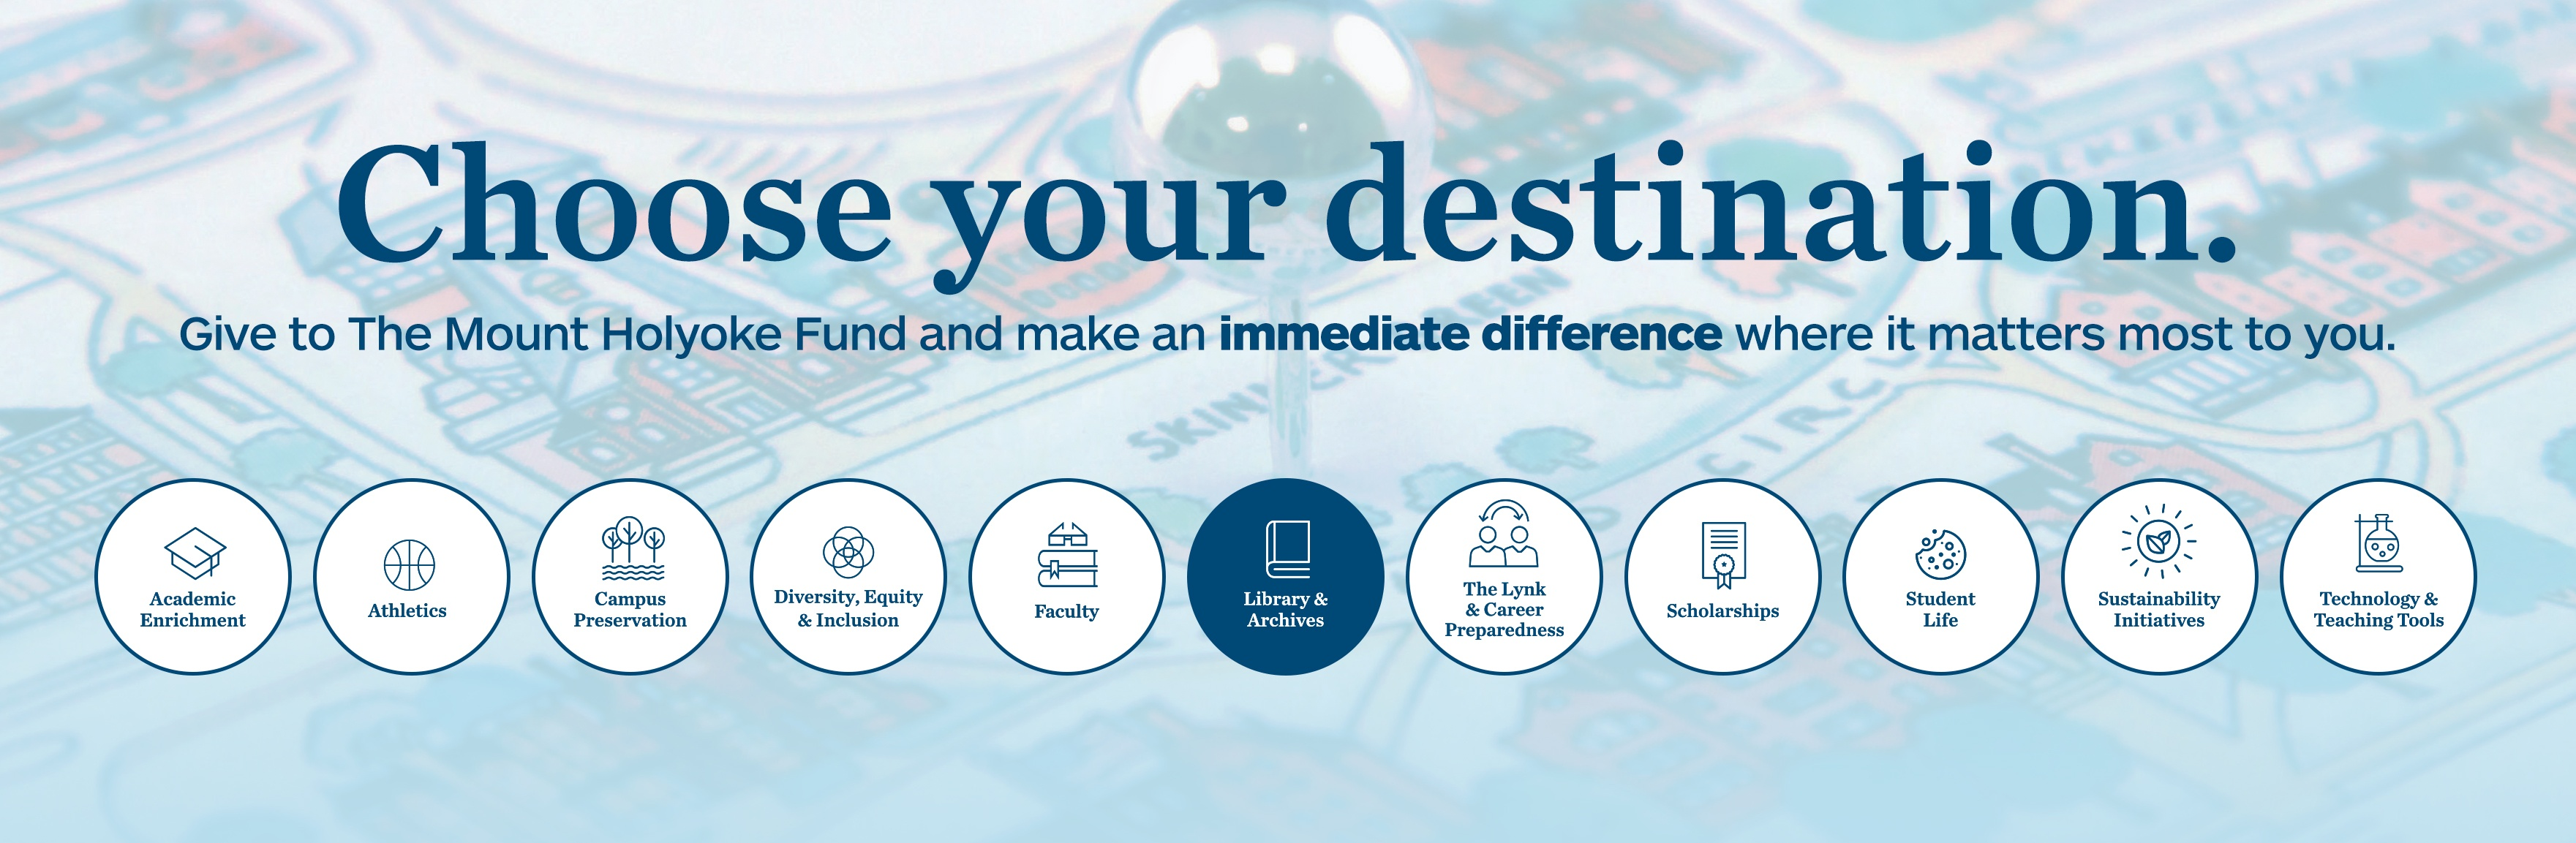 Choose a destination. Choose Library and Archives.